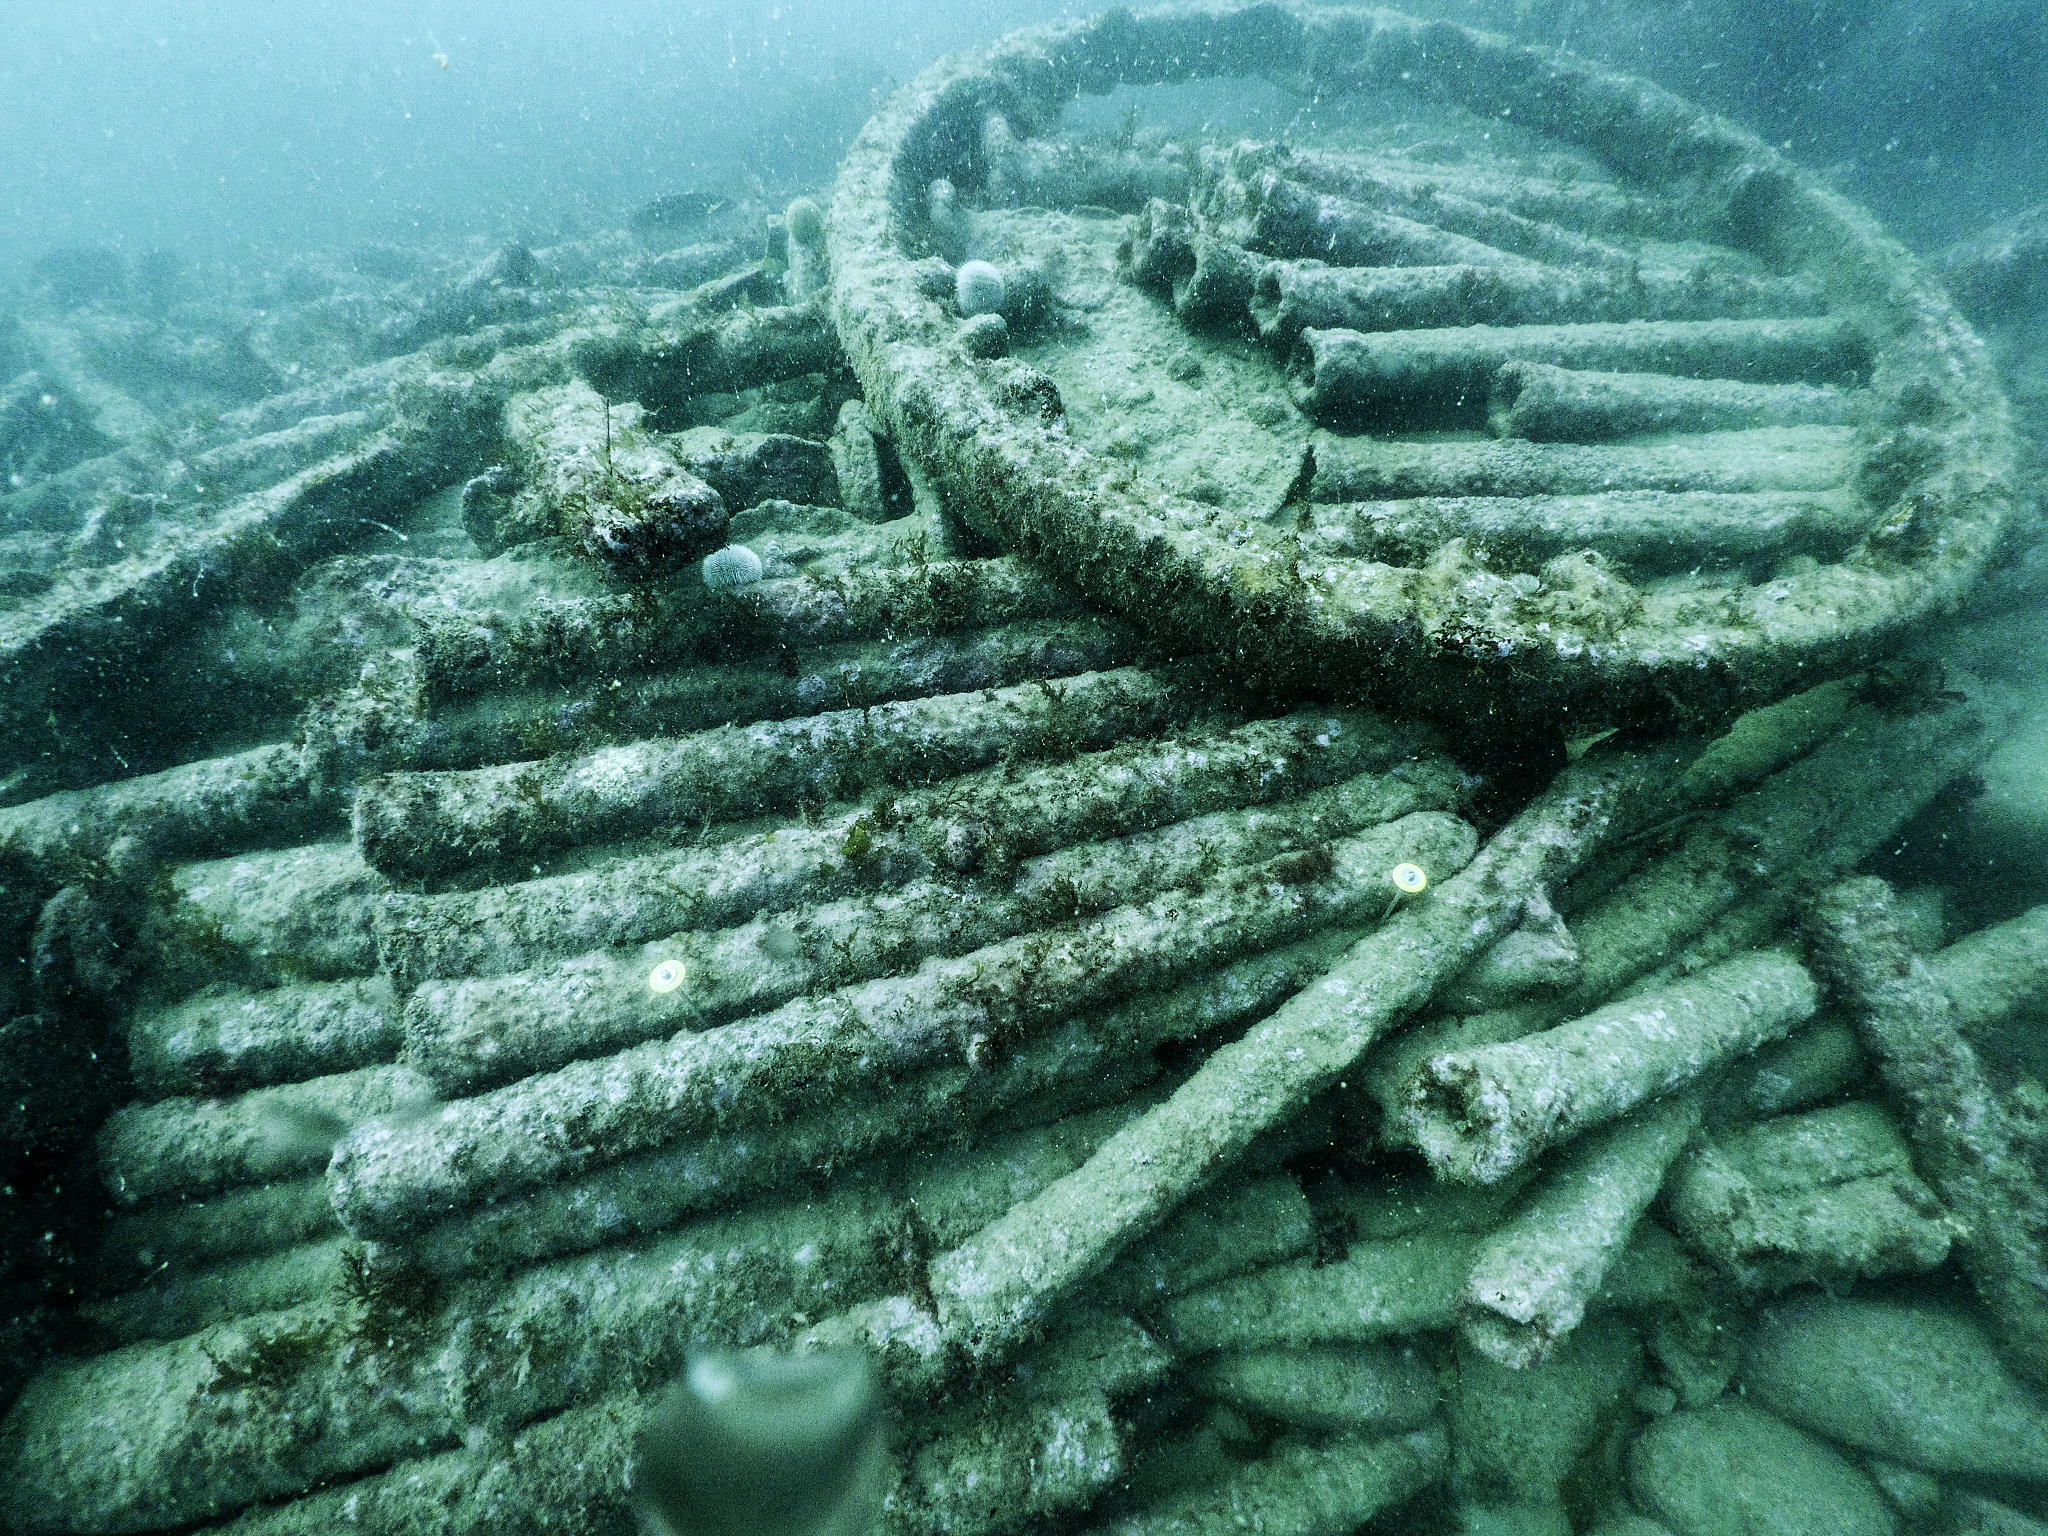 A pile of pipes underwater, with the large wheel rim sitting on top.